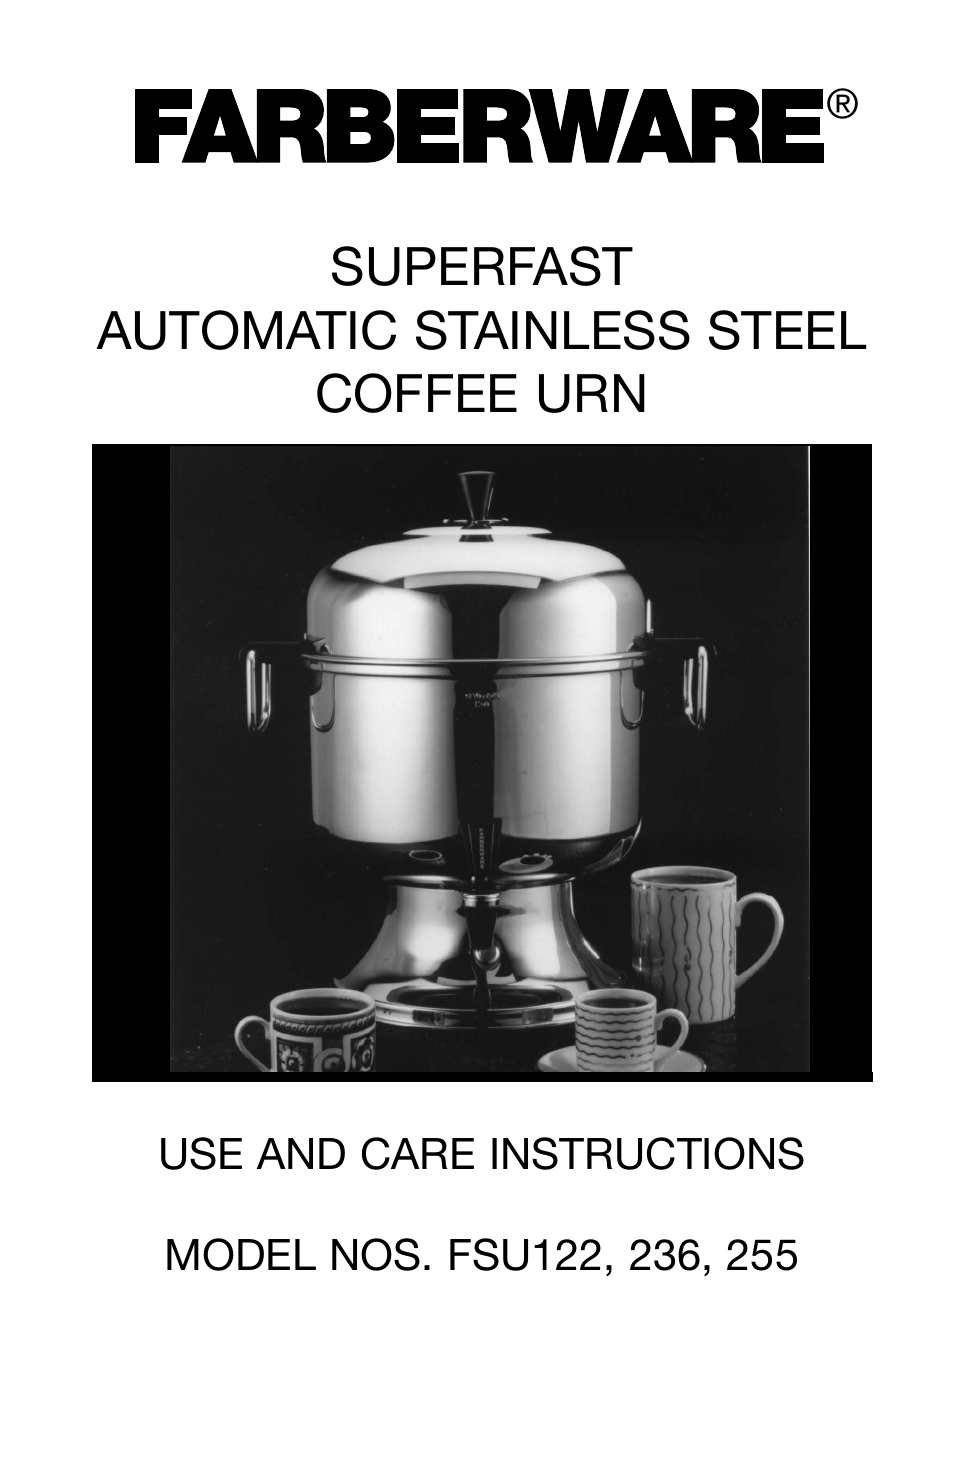 Farberware Automatic Coffee Maker Instructions : FARBERWARE AUTOMATIC STAINLESS STEEL COFFEE URN FSU 122 User Manual 6 pages Also for ...